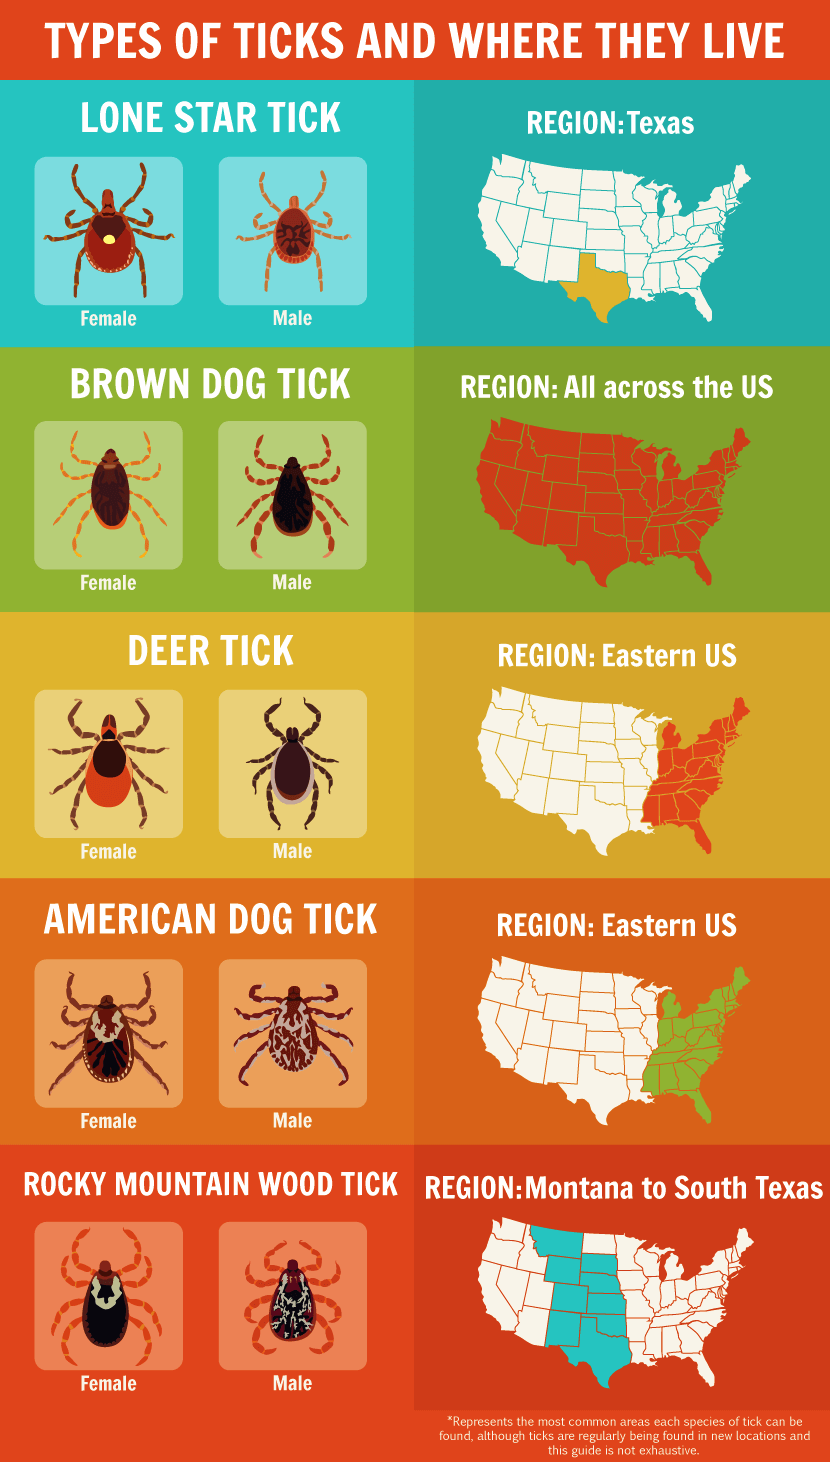 Types of Ticks and Where They Live